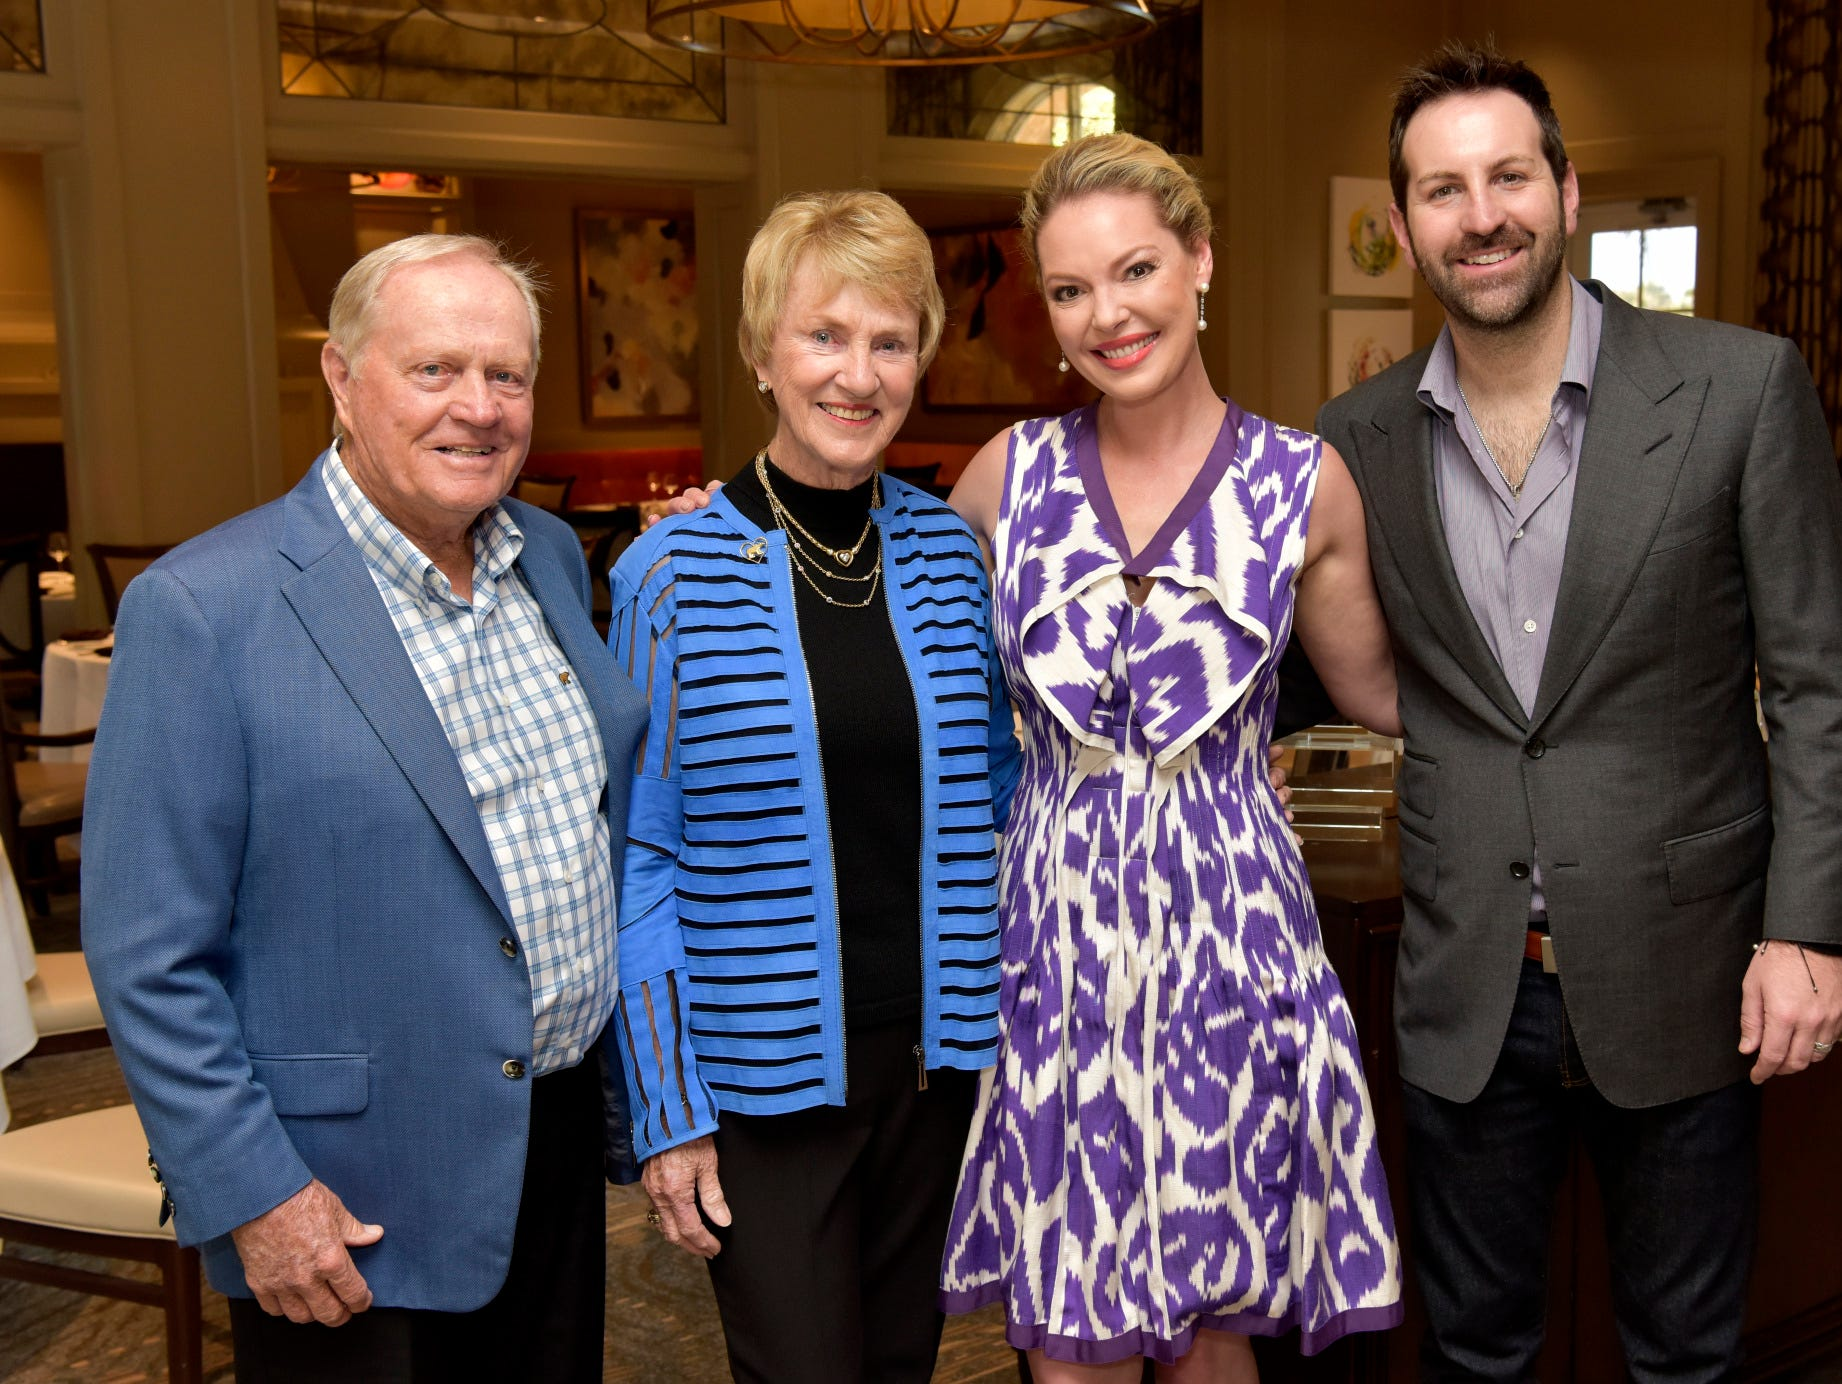 Jack and Barbara Nicklaus, left, with Katherine Heigl and Josh Kelley at the Golden Heart Luncheon in Palm Beach Gardens.